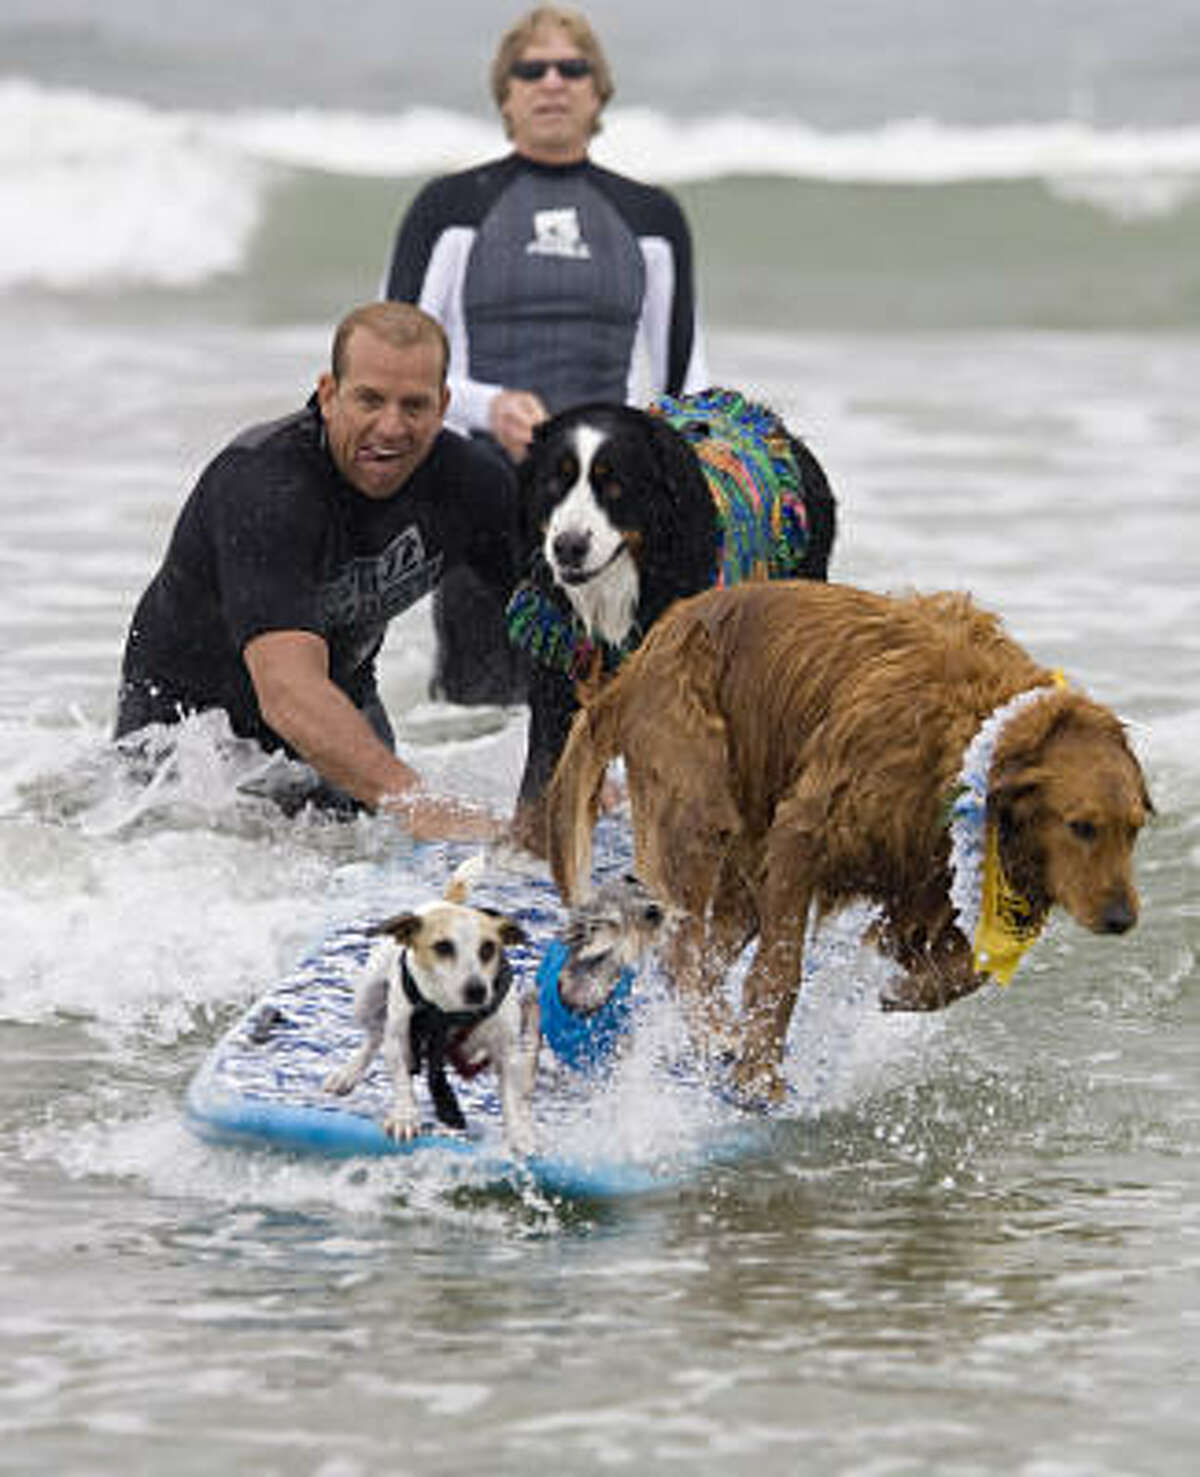 Professional surfer Scott Chandler pushes a surfboard of dogs into a wave.